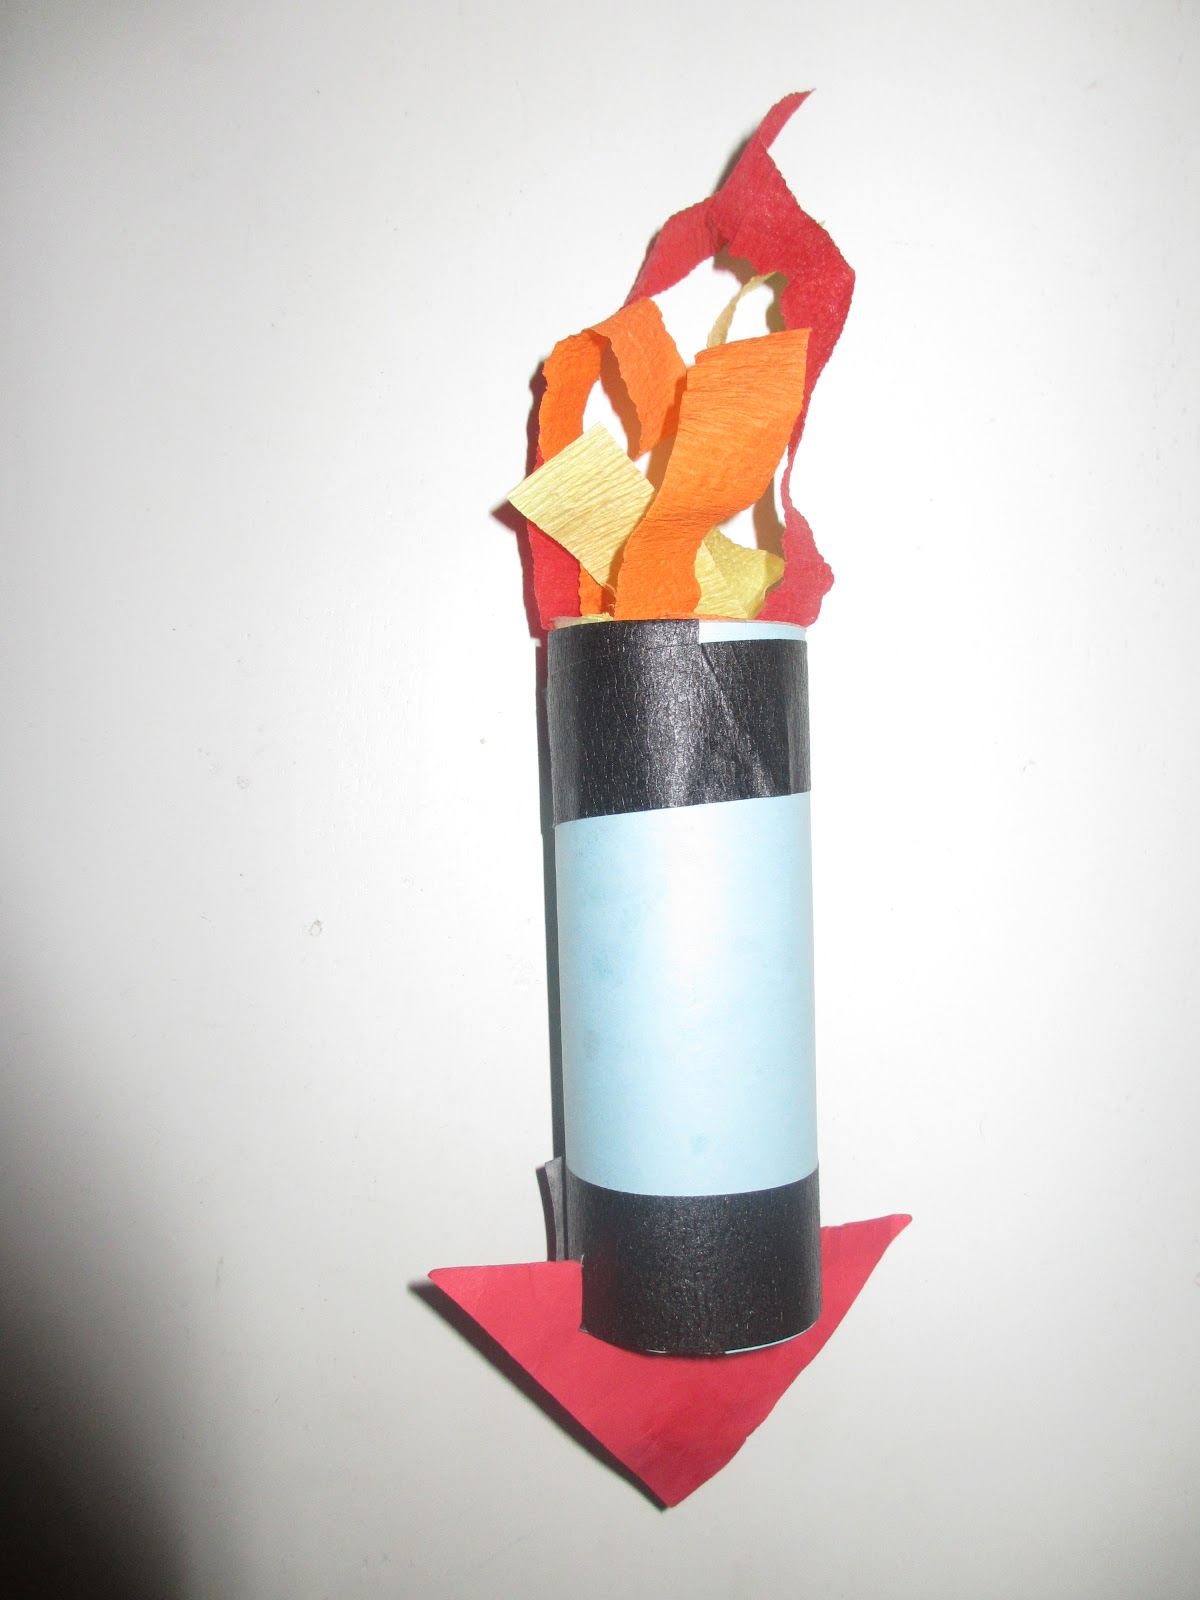 How to Make a Paper Rocket for Kids